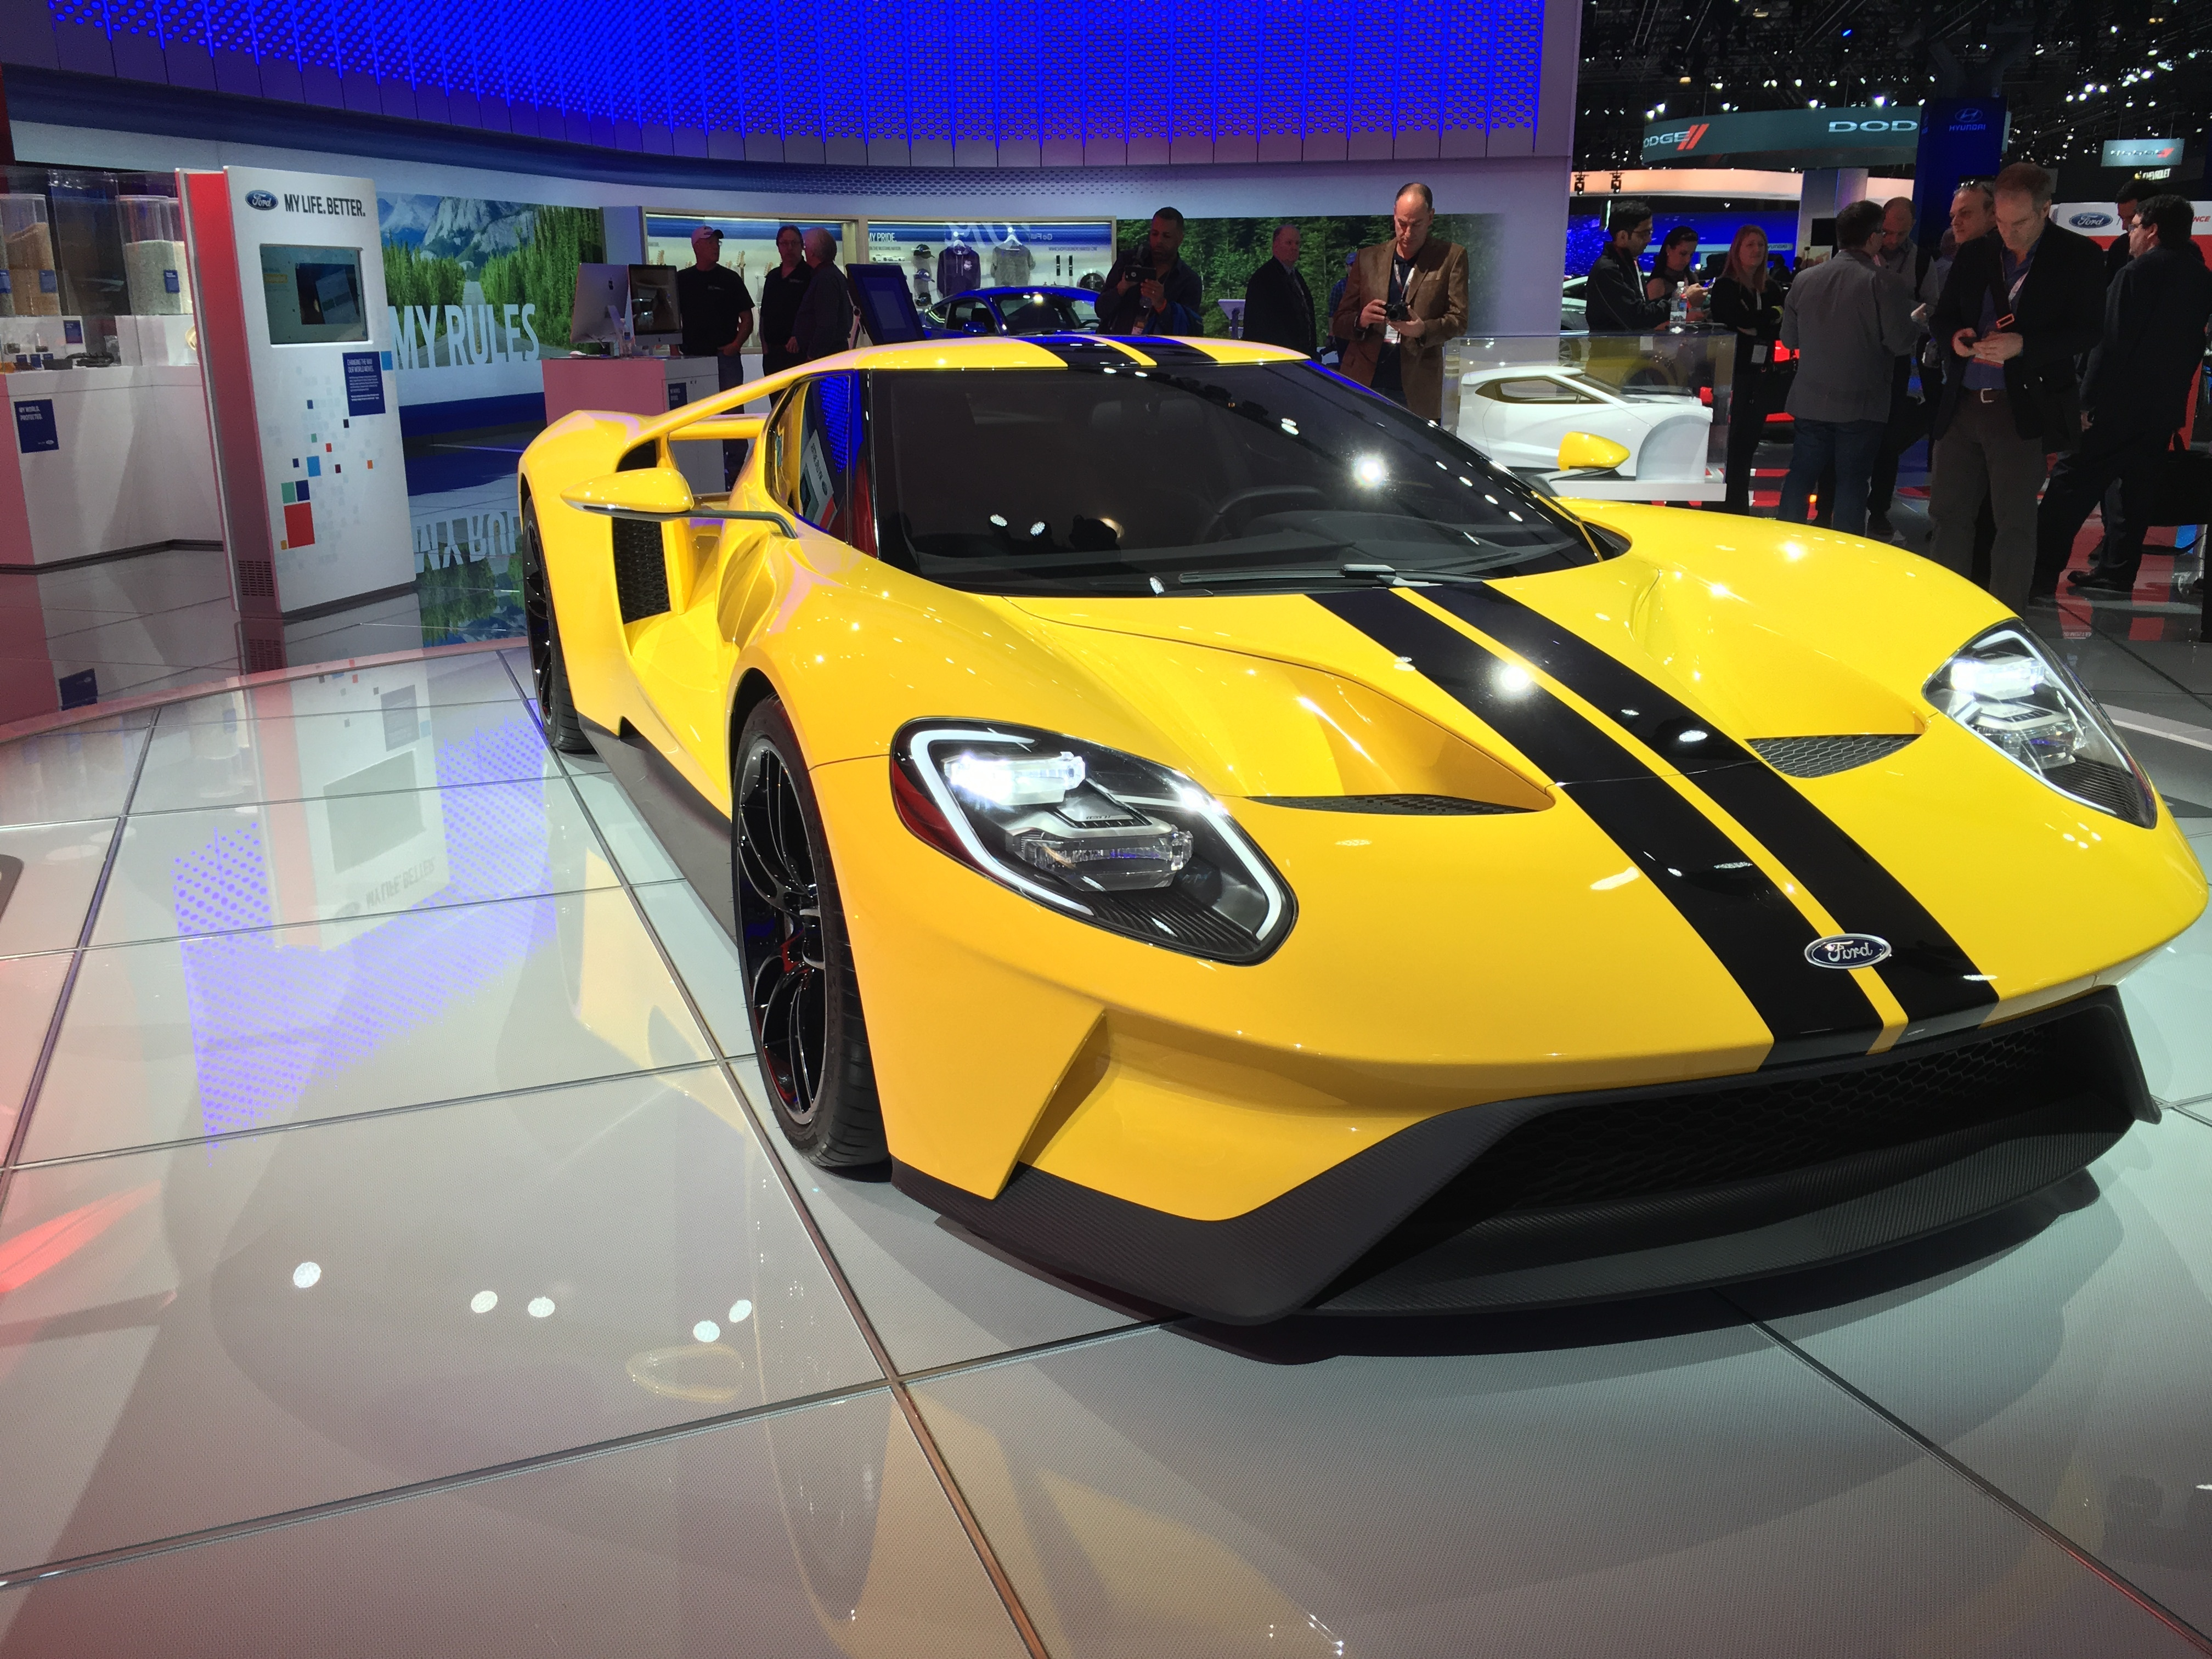 Ford's GT does not drive itself.